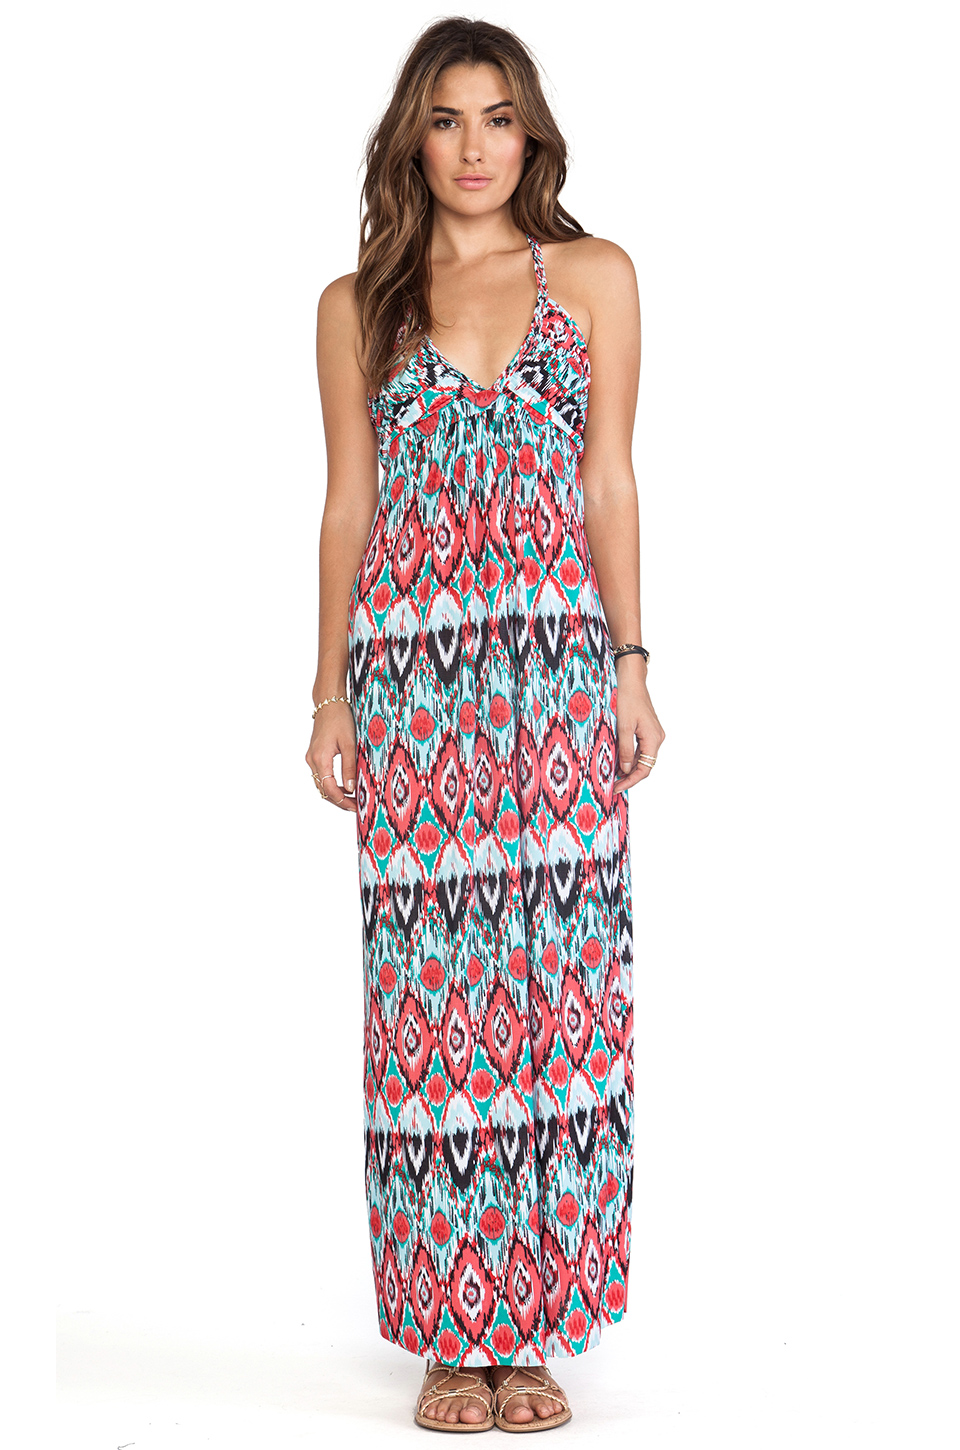 T-Bags LosAngeles Deep V Maxi Dress in Red & Turquoise Tribal | REVOLVE